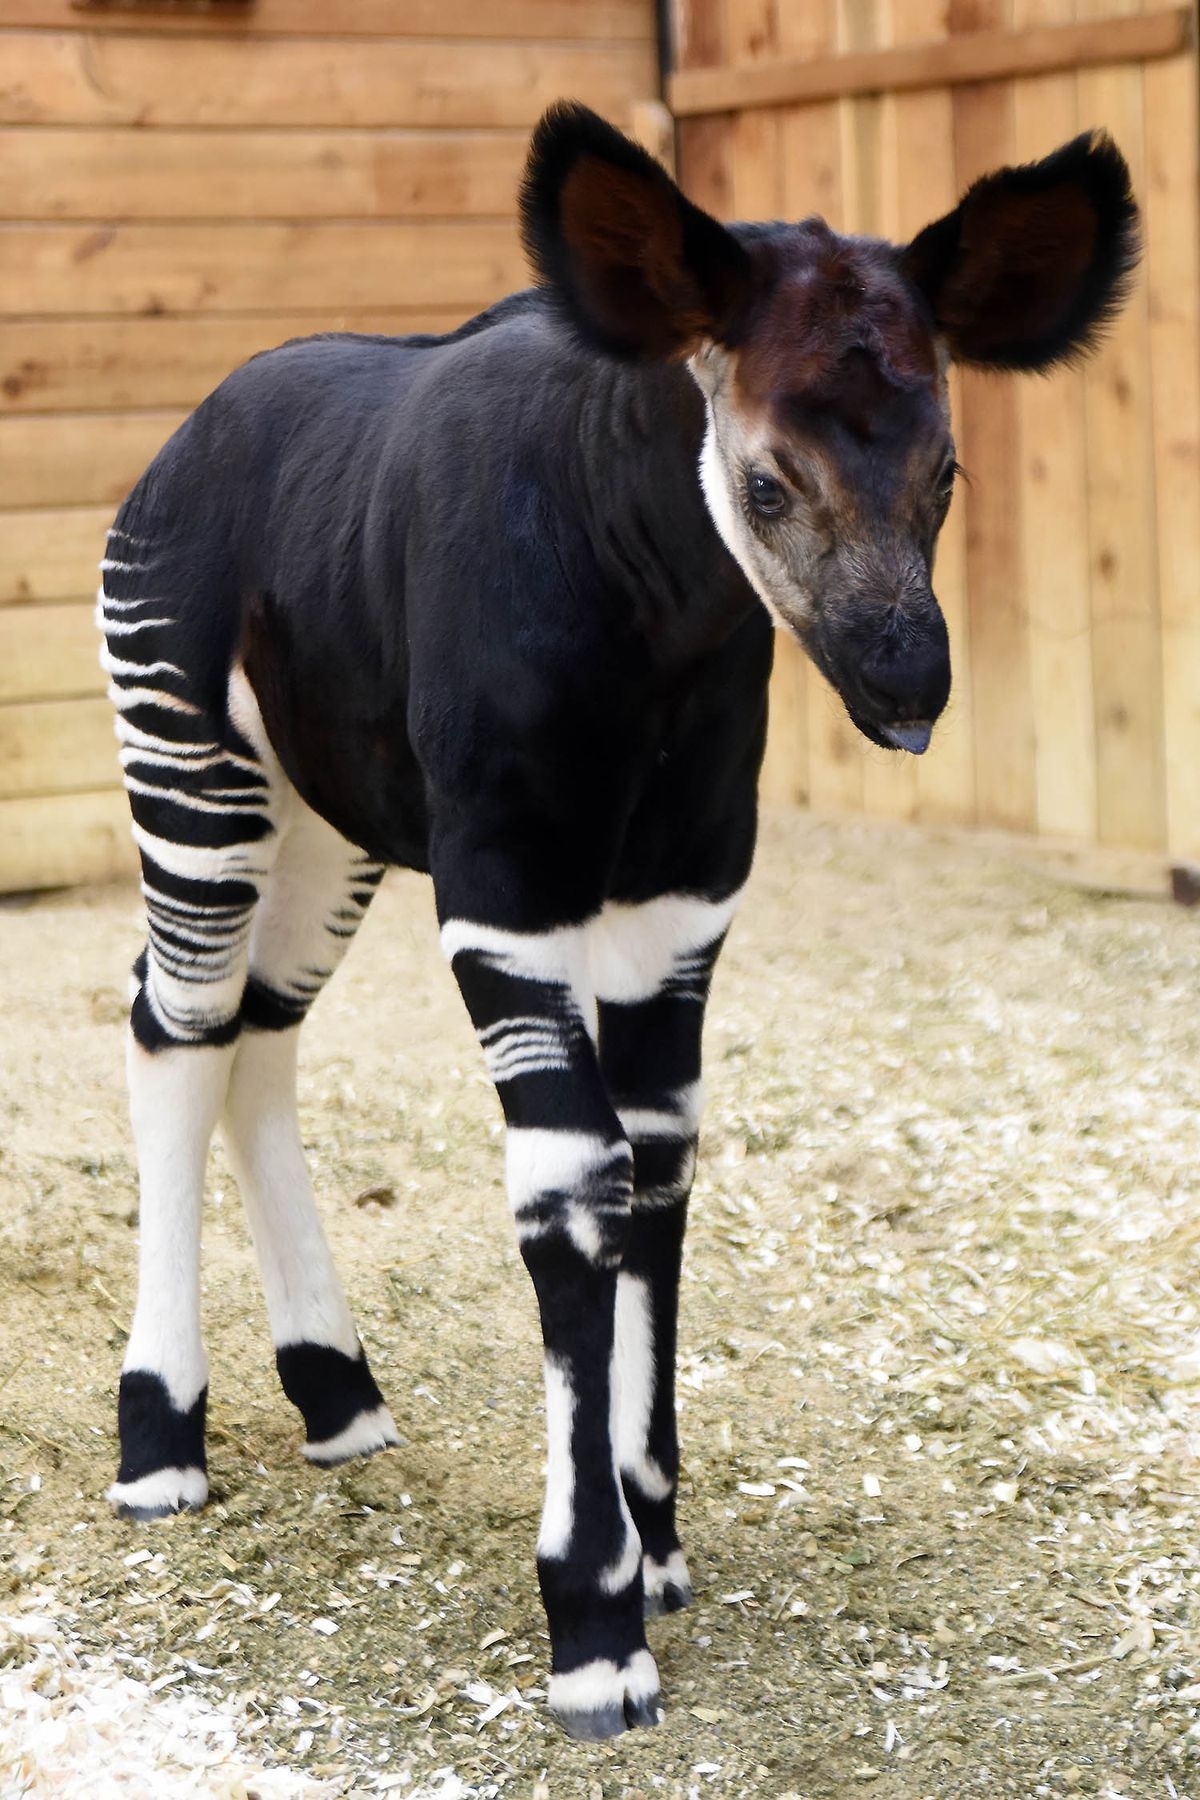 Will, an okapi calf born at Brookfield Zoo on April 21 is the 27th successful okapi born at the zoo. |Jim Schulz/Chicago Zoological Society